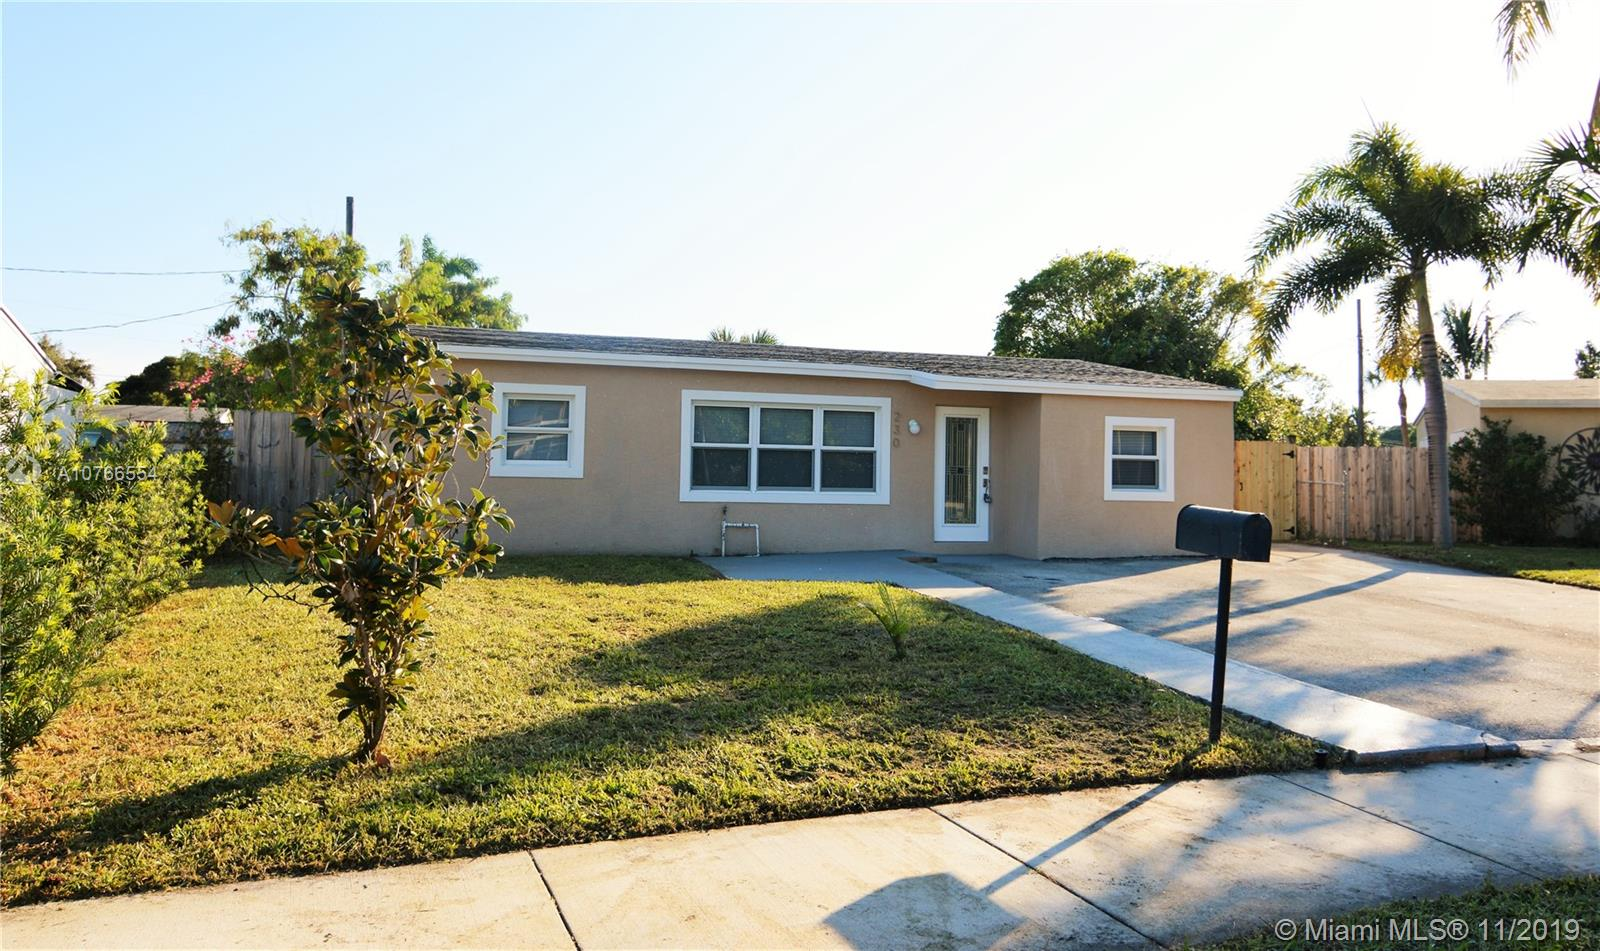 Gorgeous 3 Bed 1 Bath home in  the heart of Oakland Park. Remodeled Kitchen, new lightning, freshly painted inside and out. Must see wont last